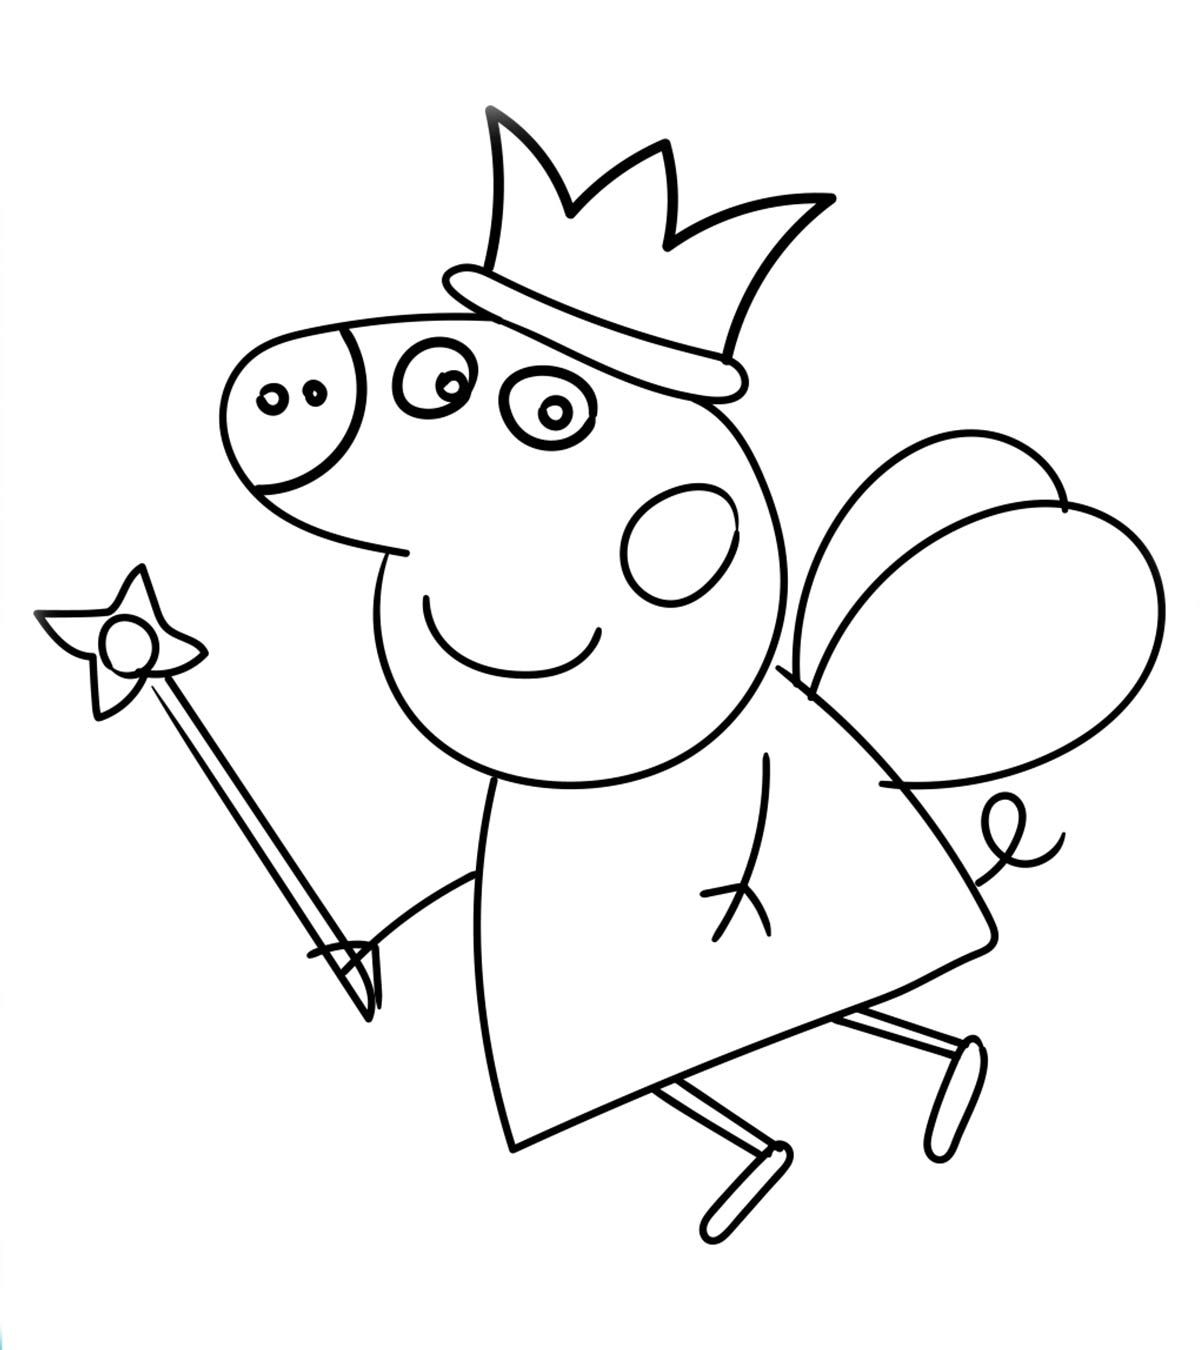 Peppa Pig Coloring In Pages With Images Peppa Pig Coloring Pages Peppa Pig Colouring Peppa Pig Pictures